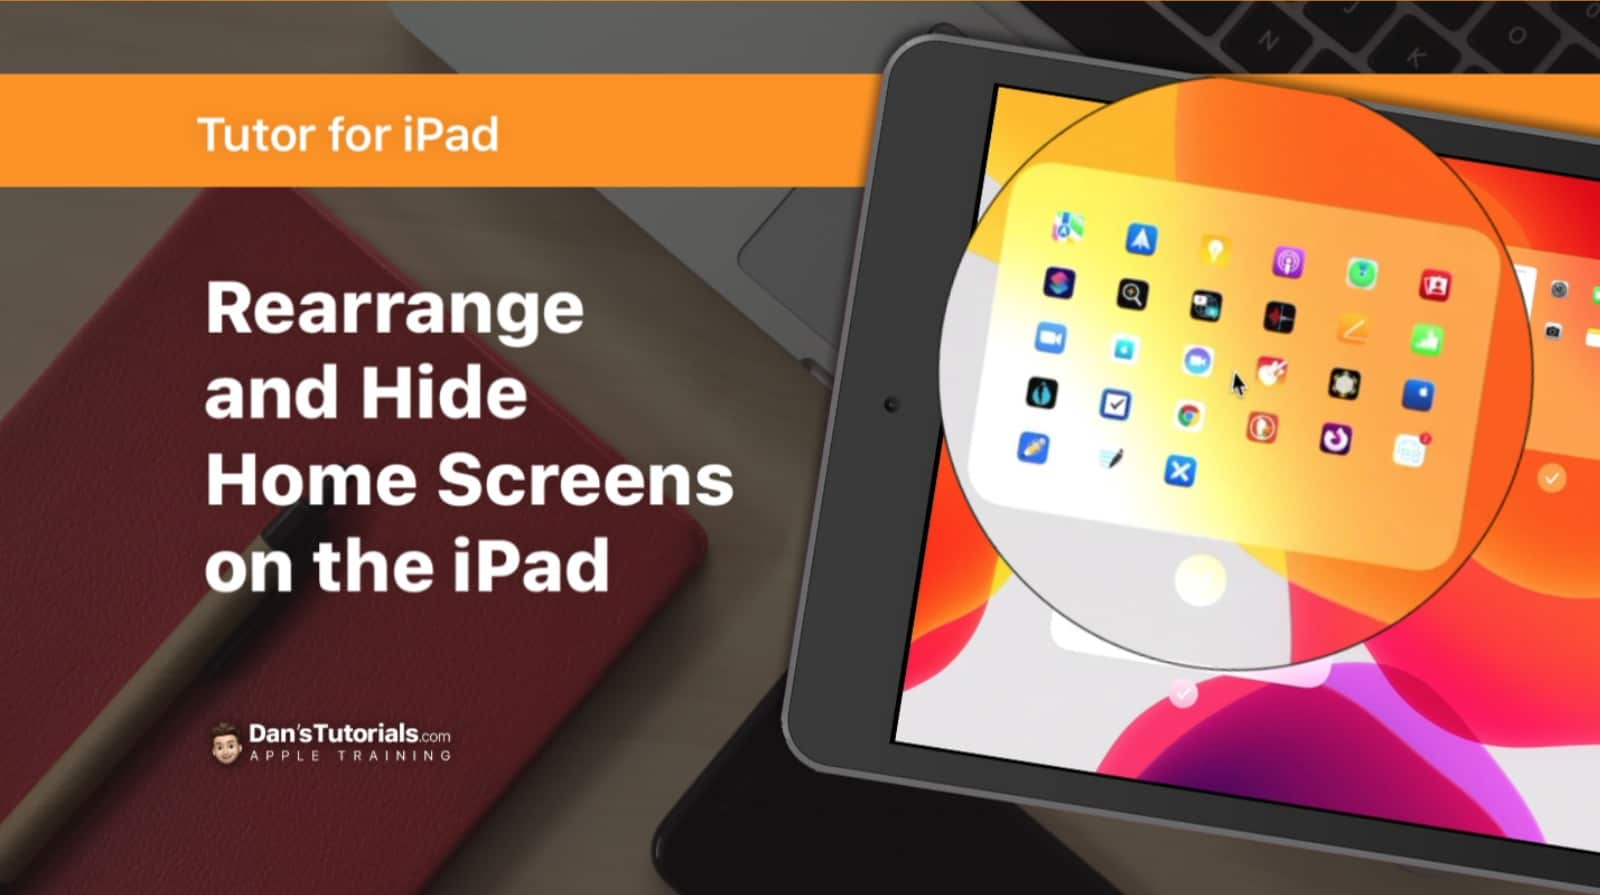 Rearrange and Hide Home Screens on the iPad